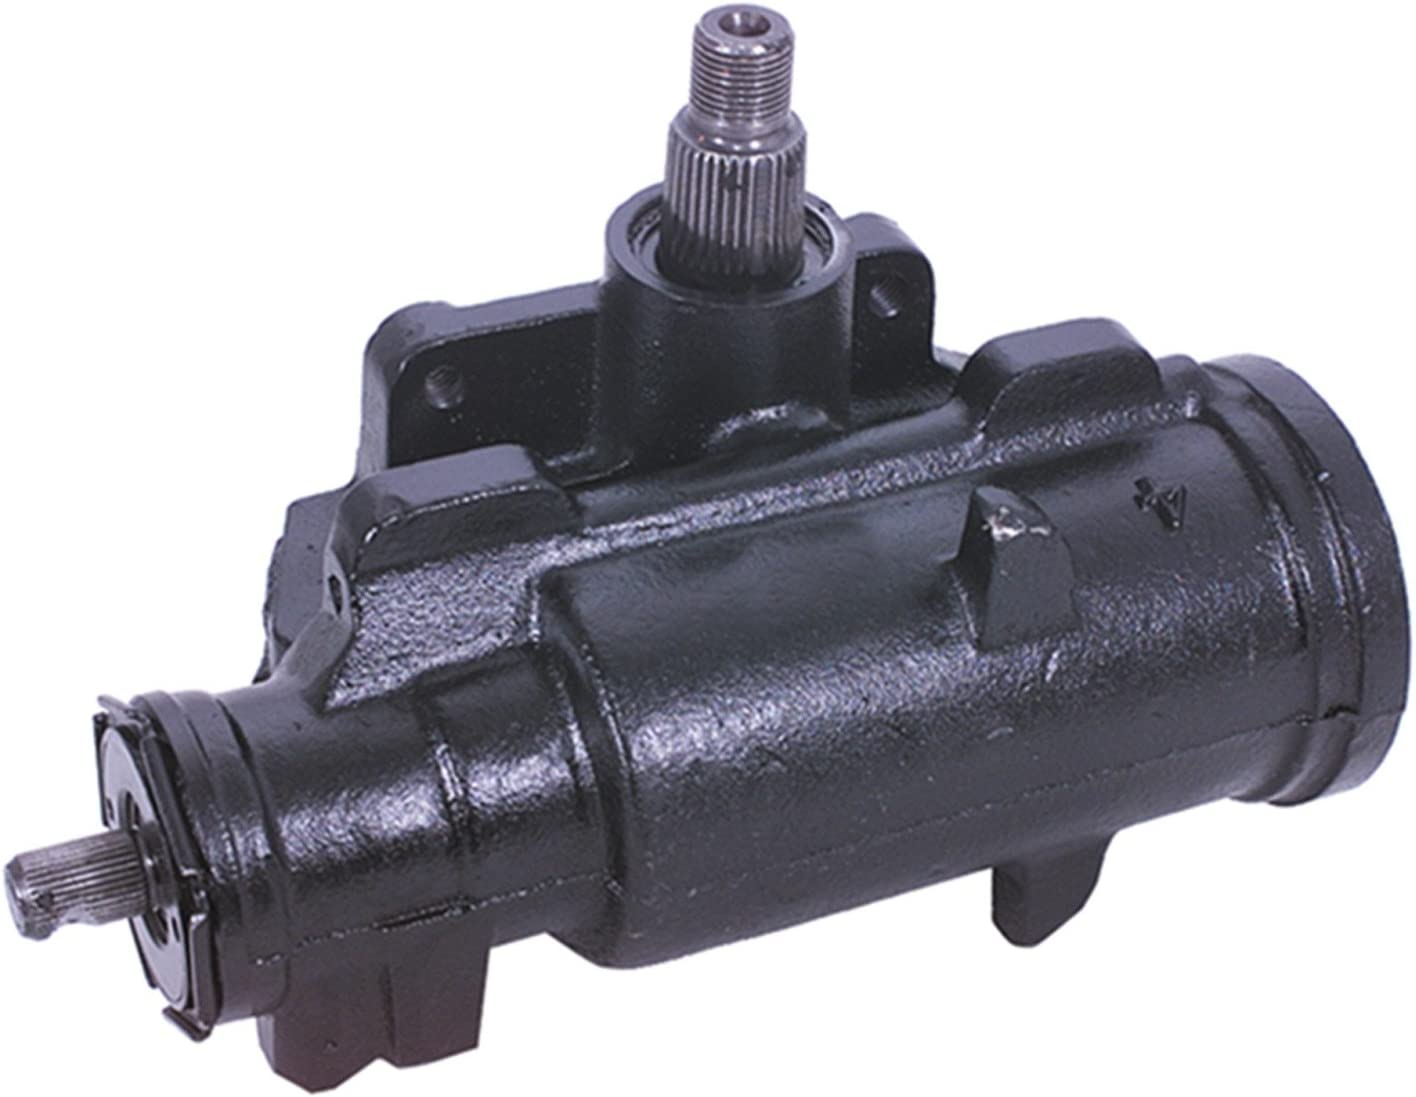 Remanufactured ACDelco 36G0063 Professional Steering Gear without Pitman Arm